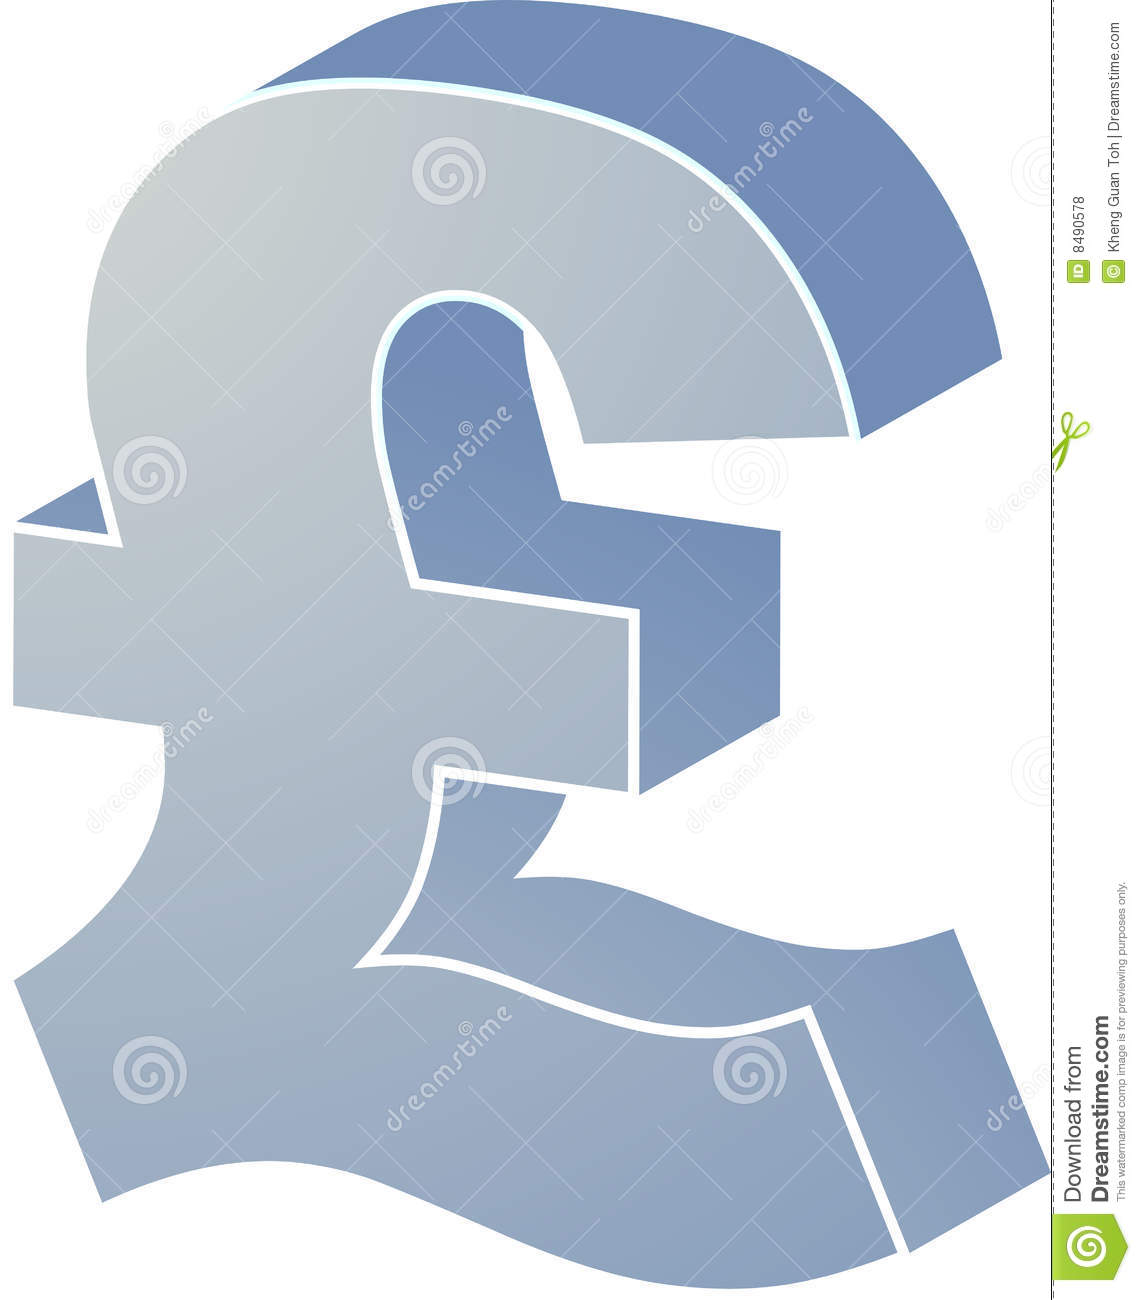 British Pounds Stock Illustration Illustration Of Finance 8490578